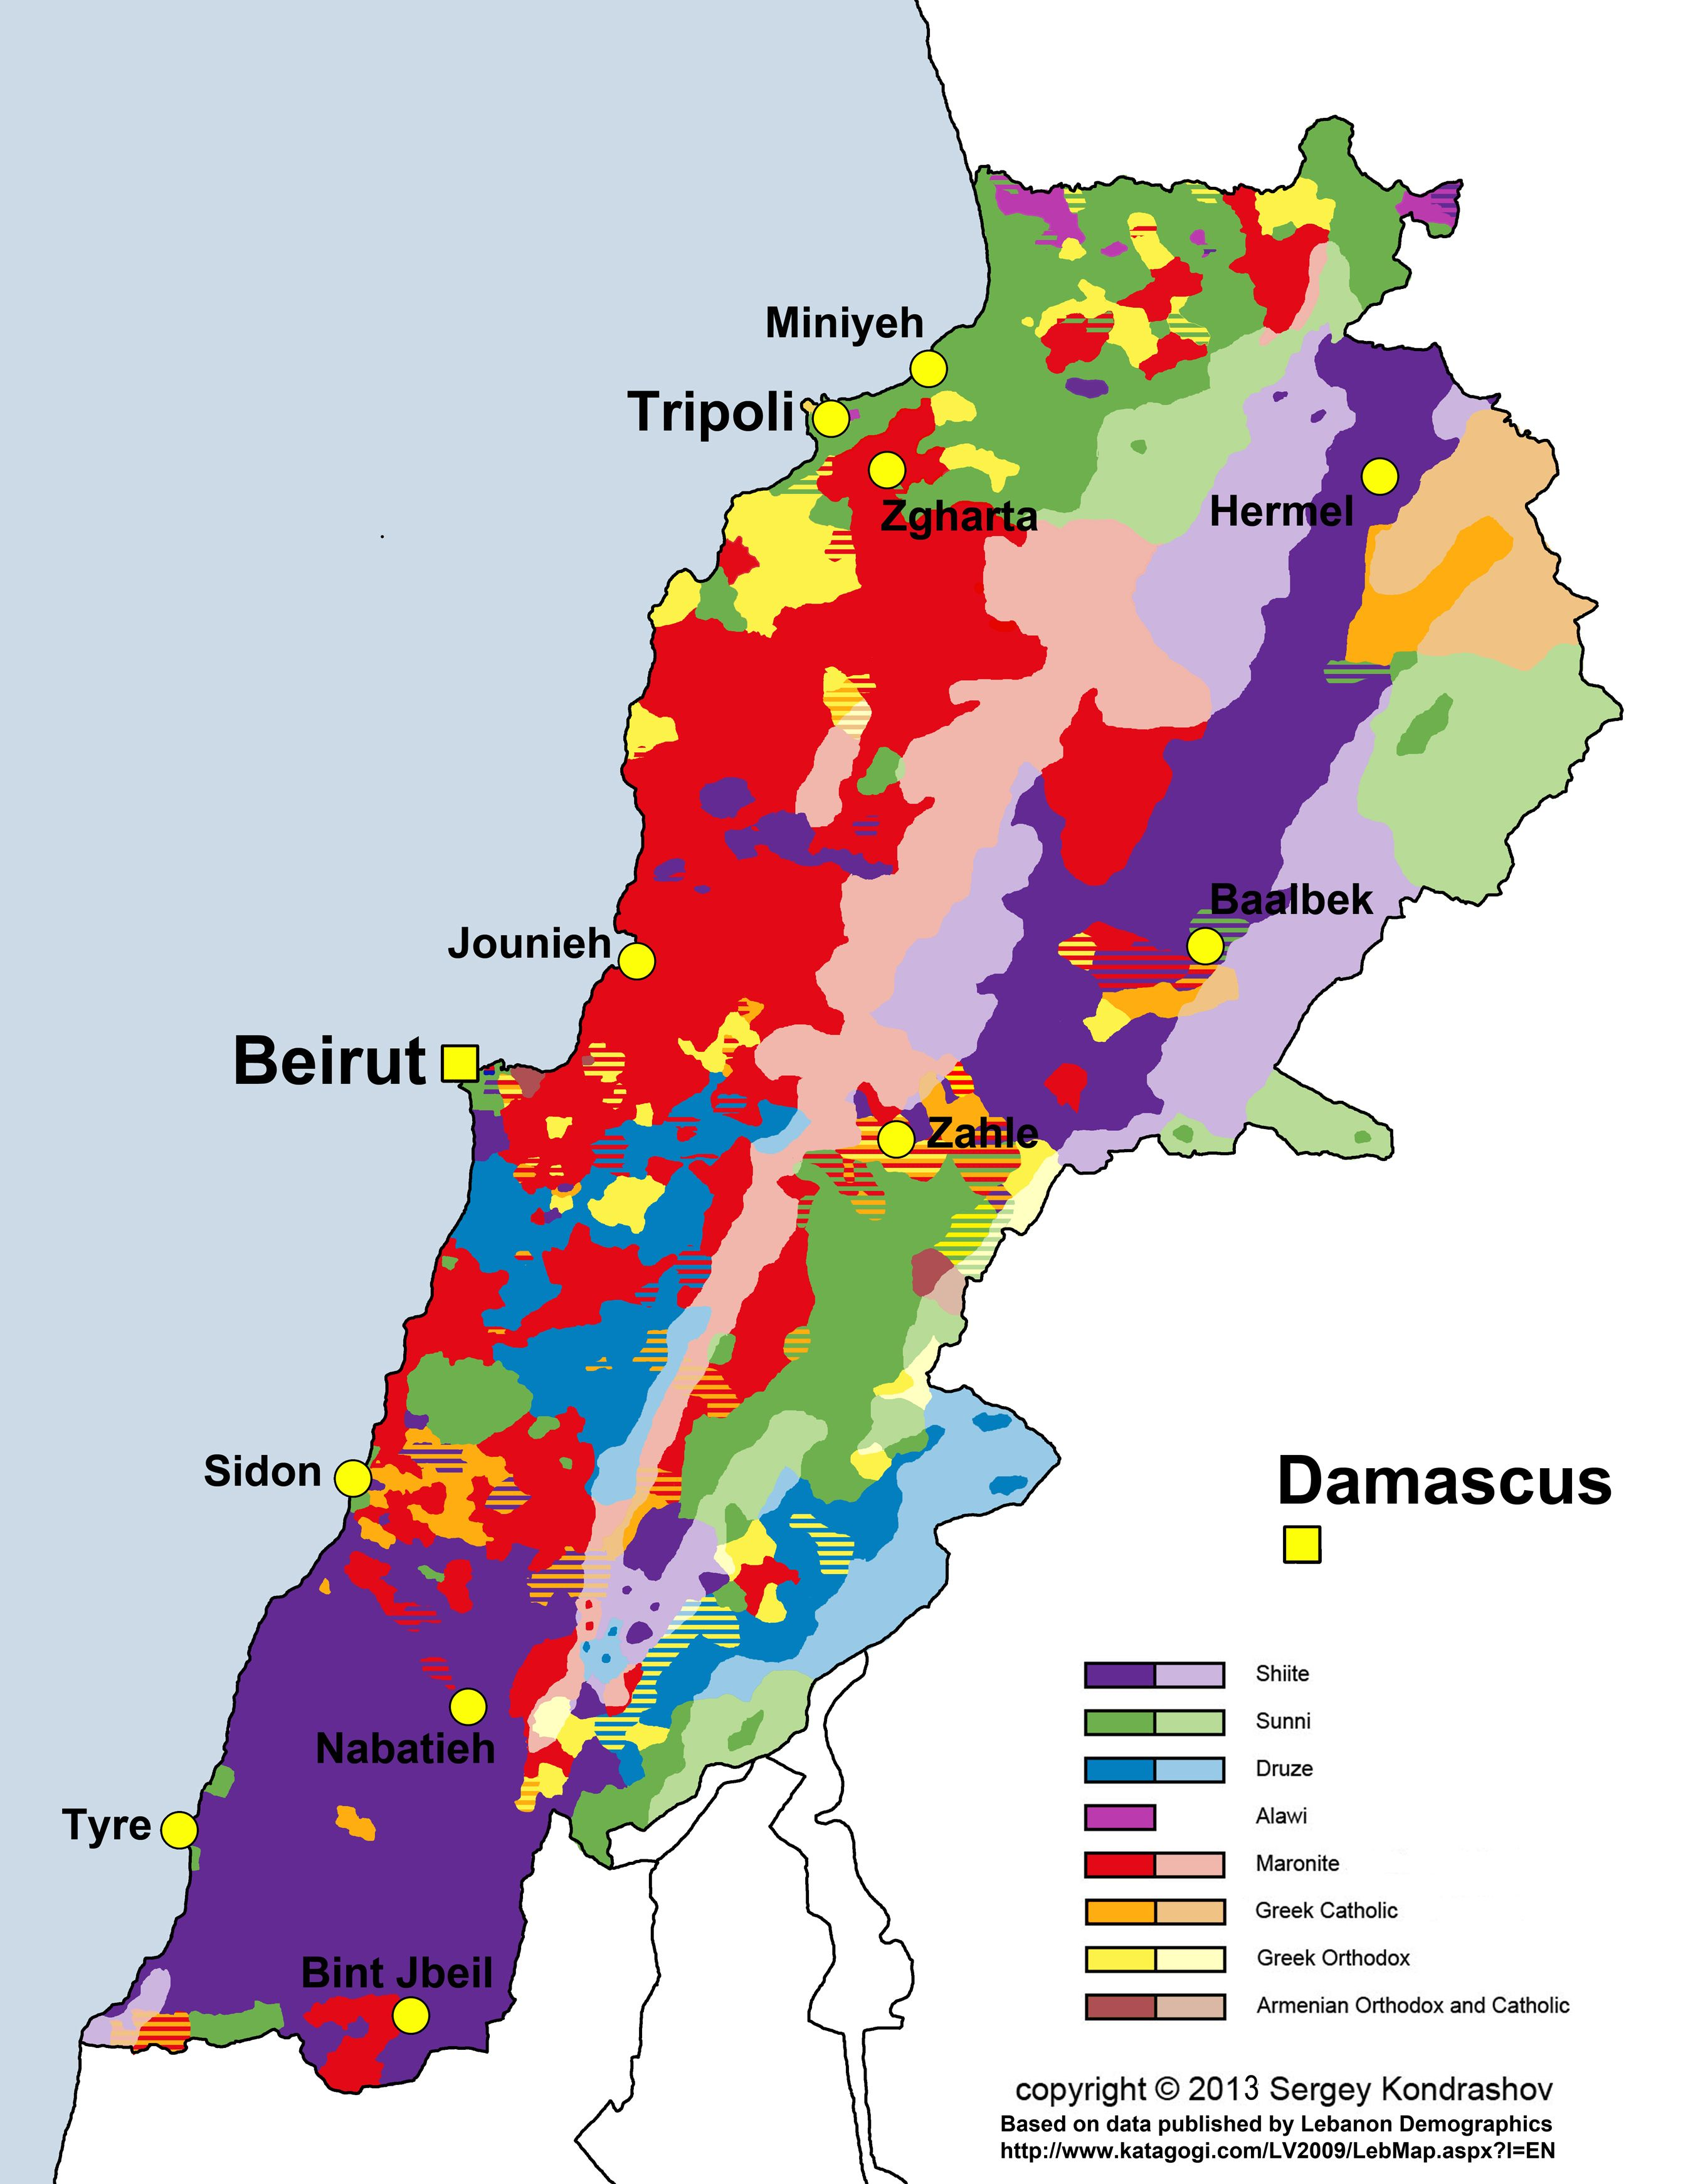 distribution of main religious groups of lebanon according